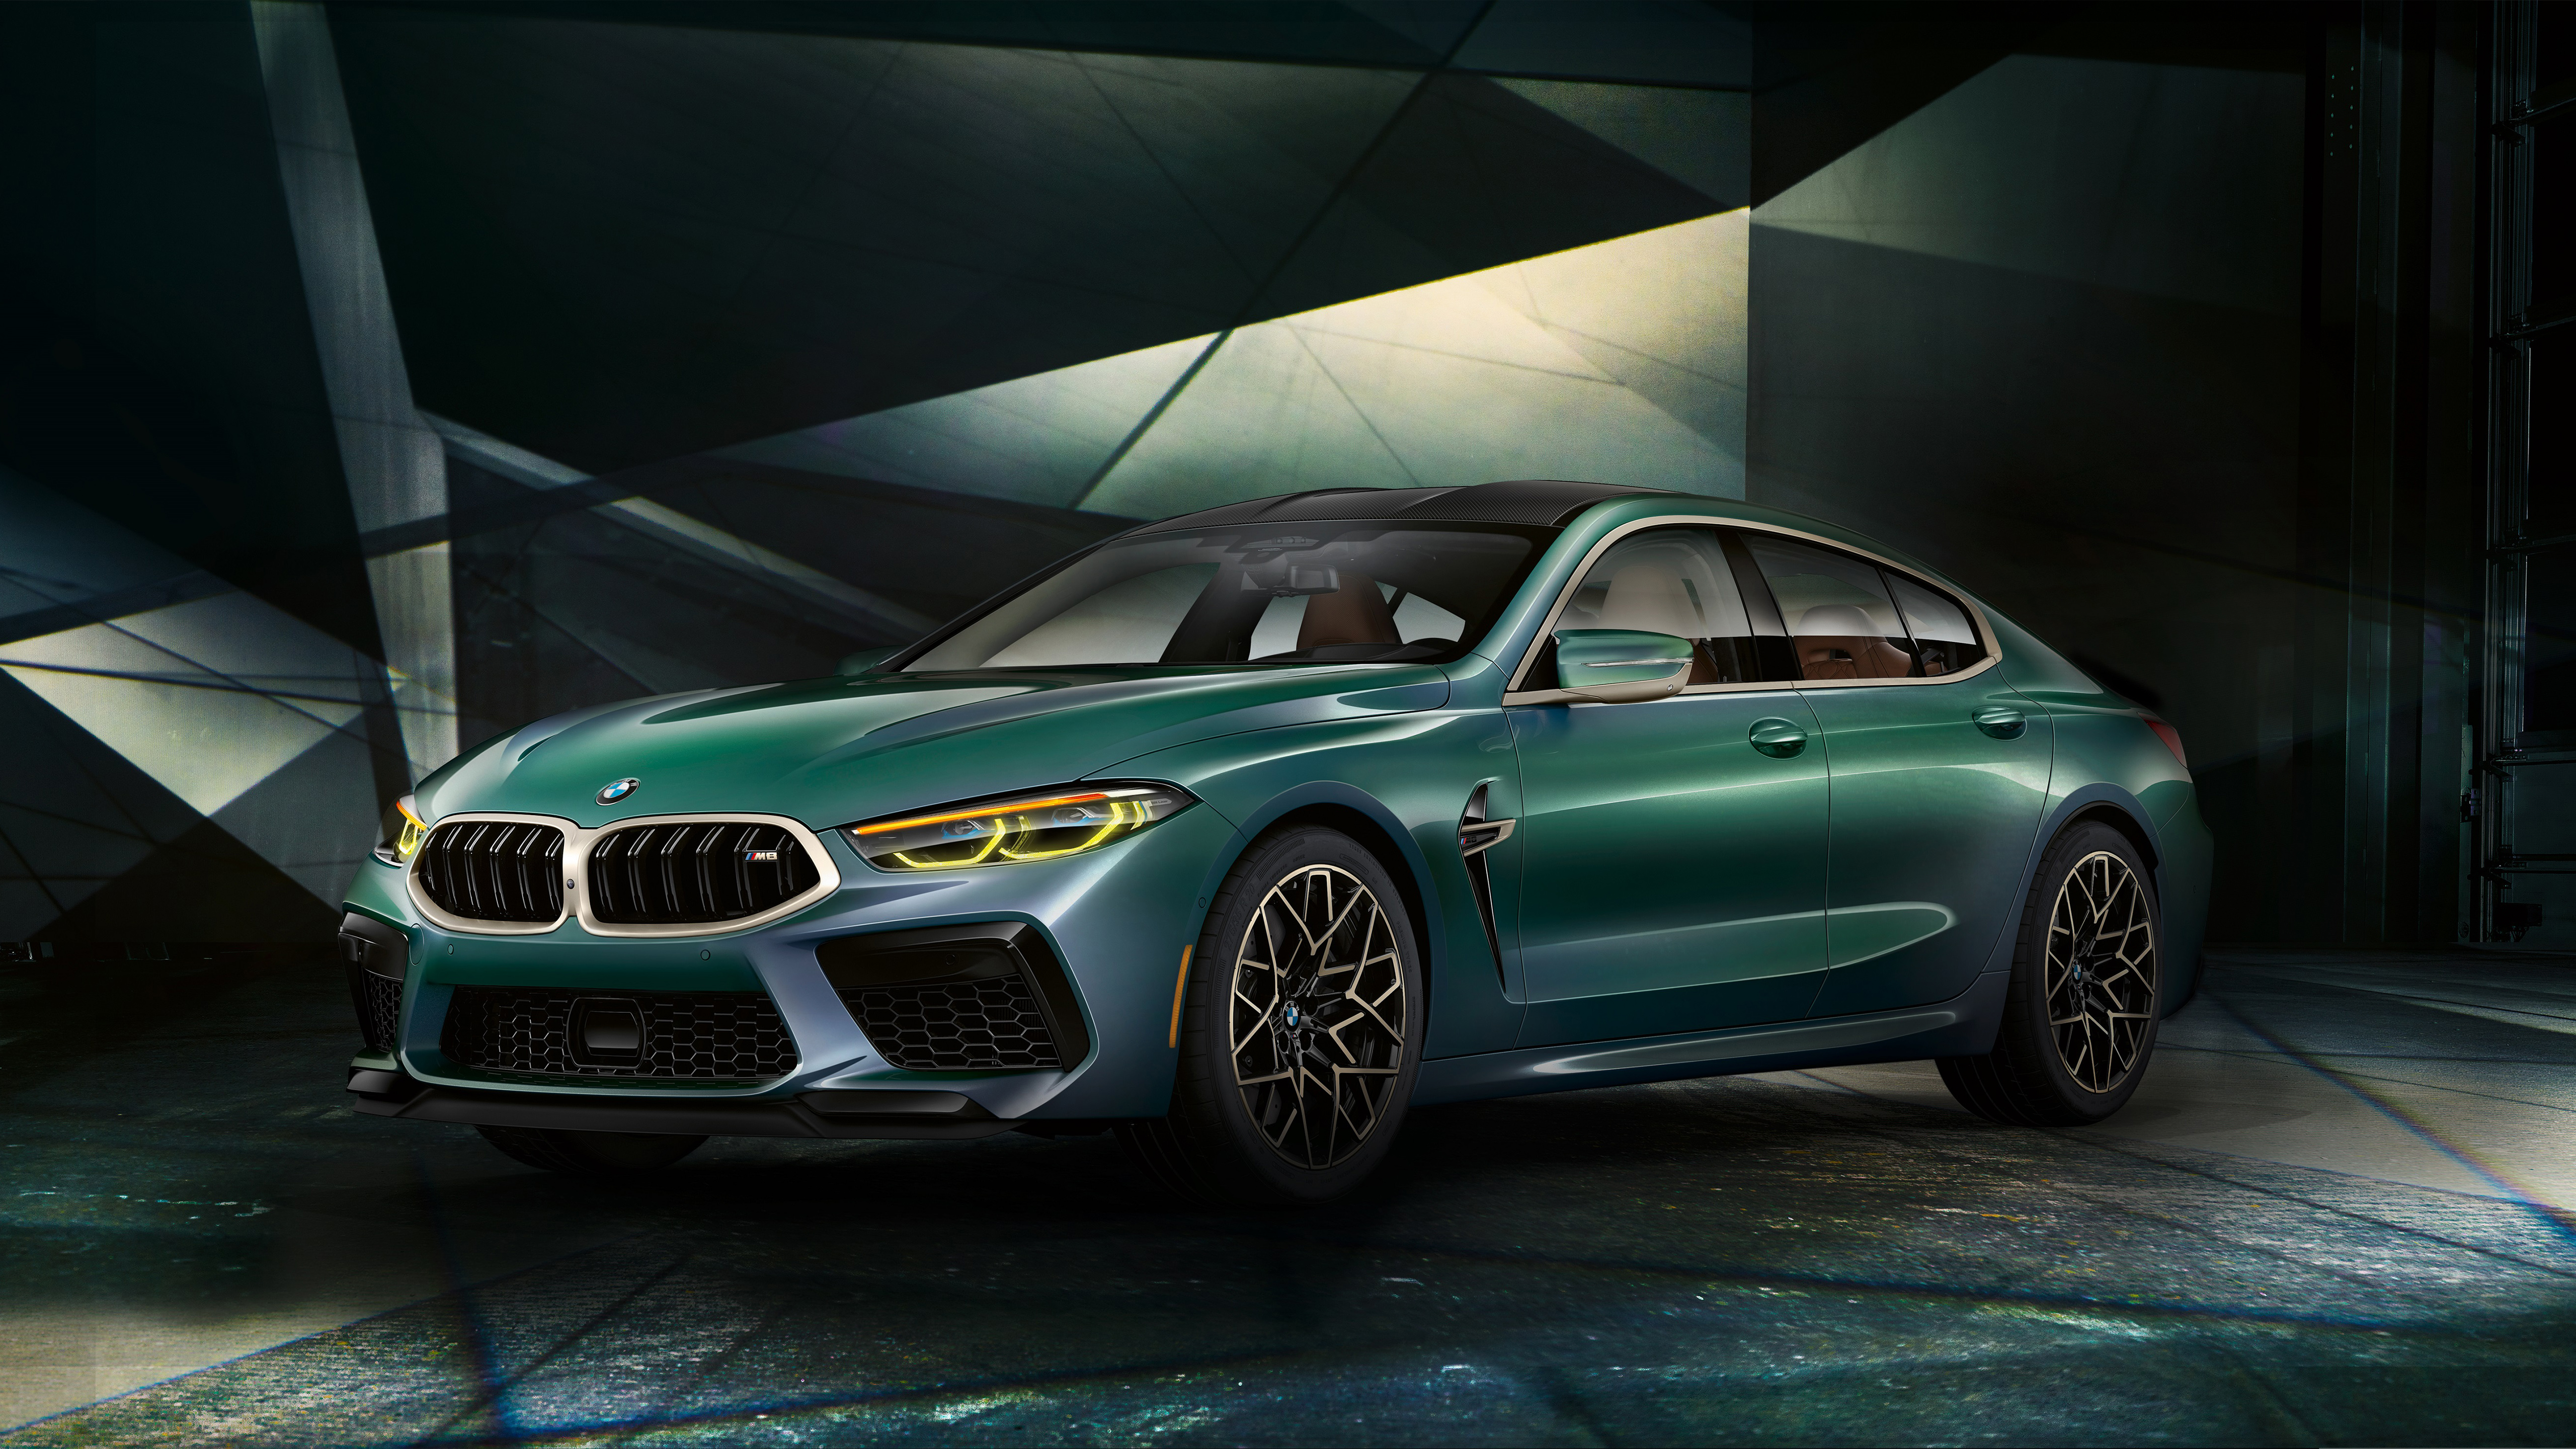 2020 BMW M8 Gran Coupe First Edition 4K Wallpaper HD Car 5120x2880